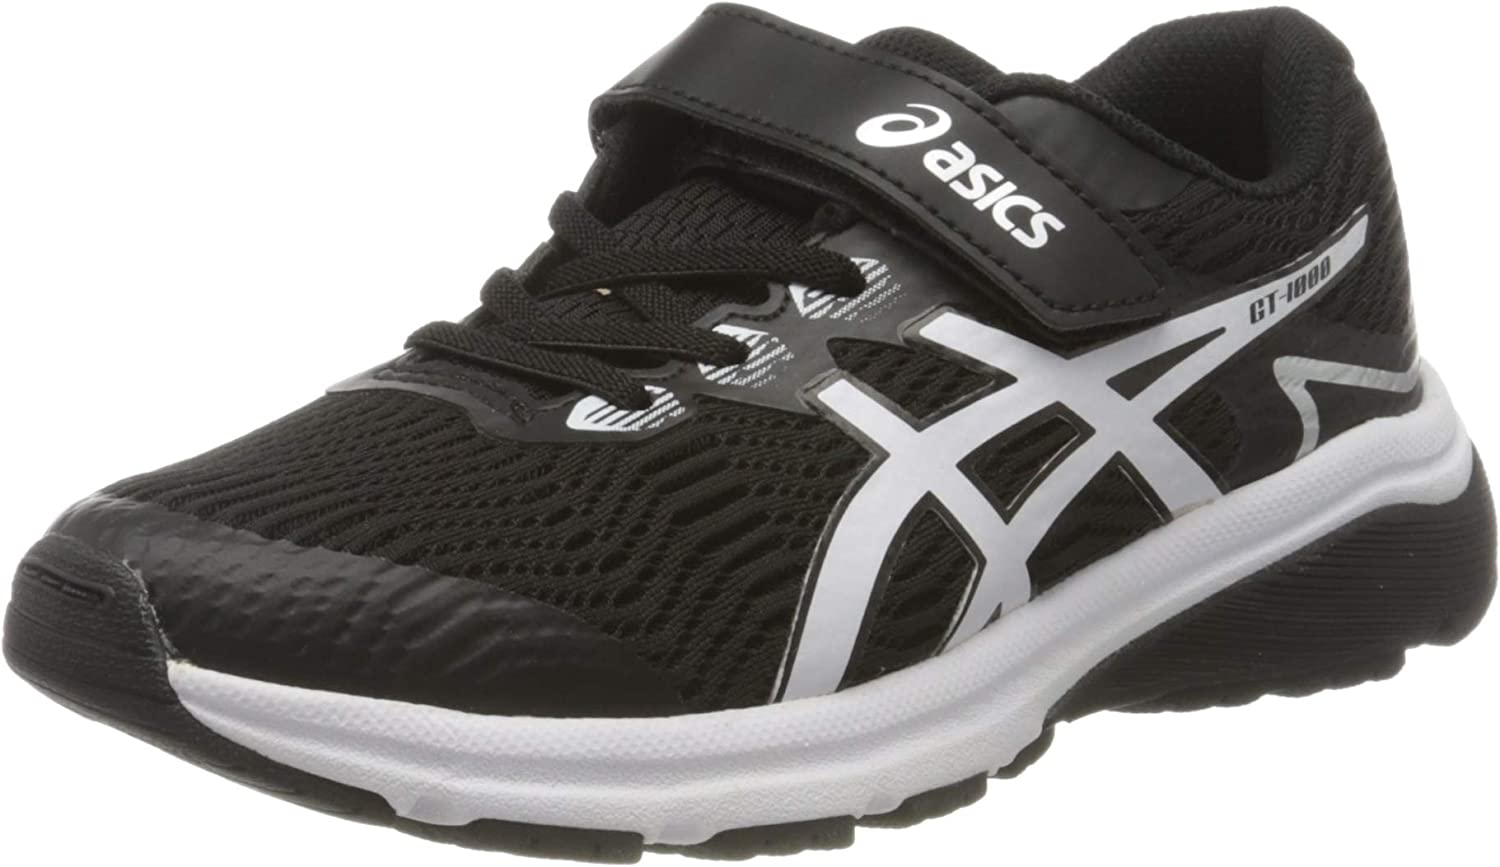 ASICS GT-1000 8 PS Junior Zapatillas para Correr - AW19: Amazon.es: Zapatos y complementos